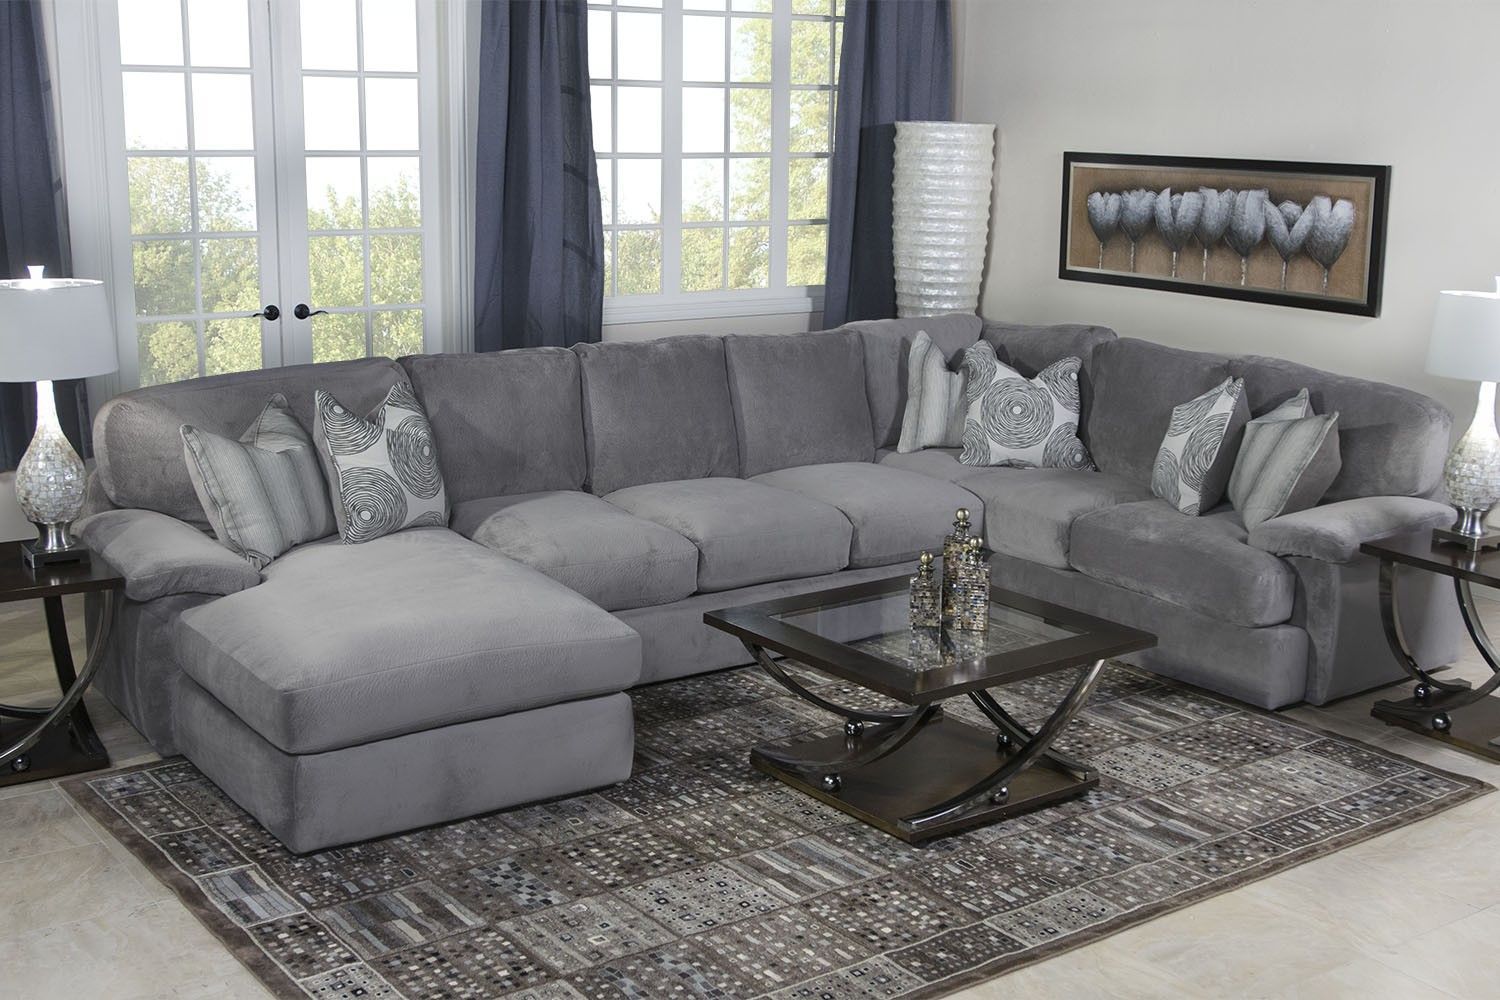 Key west sectional living room in gray living room mor for Lounge room furniture ideas